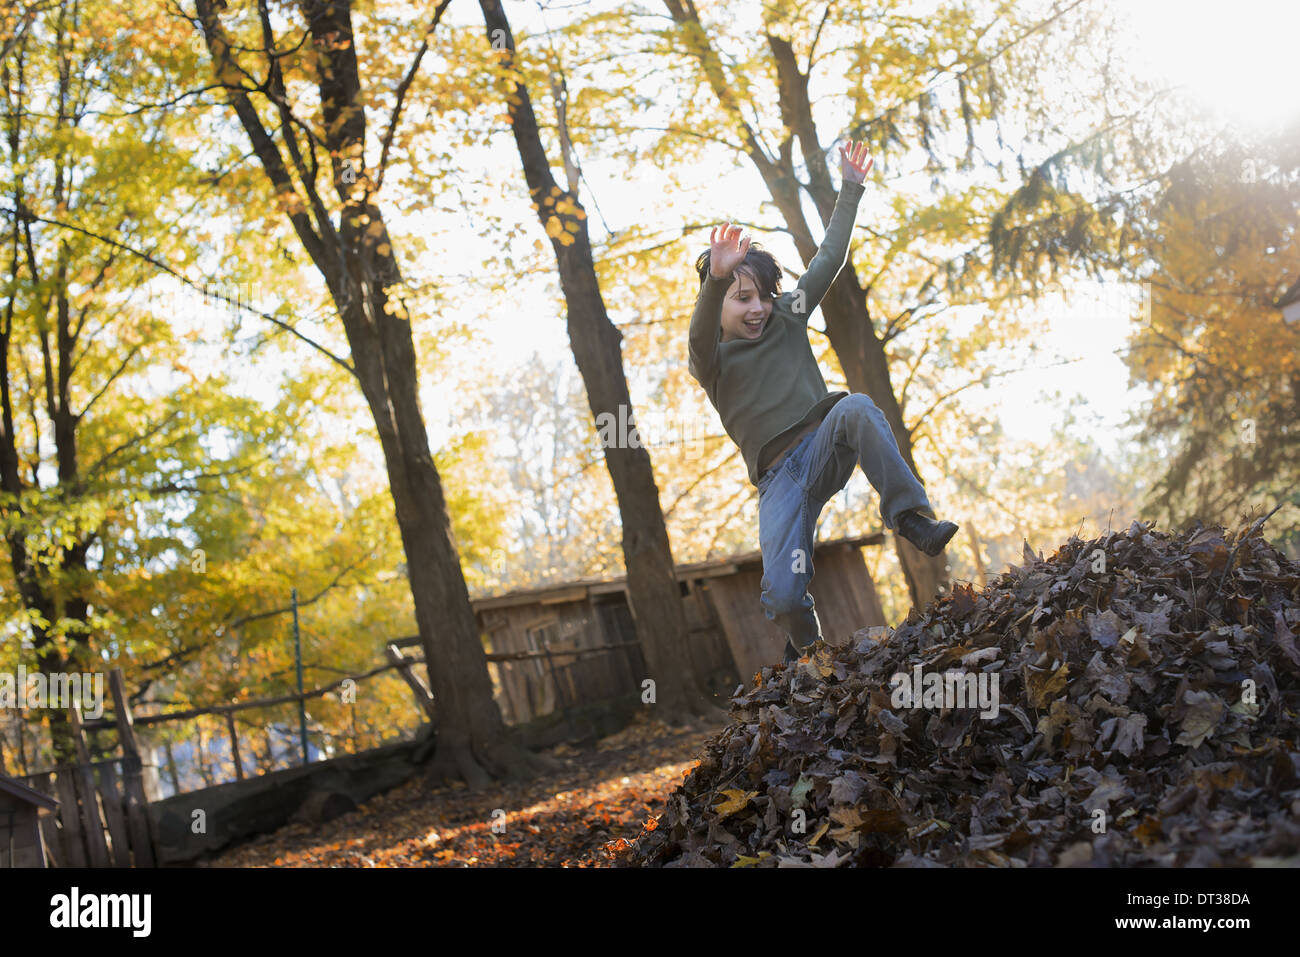 A child in autumn sunshine in a woodland. Leaping into a large pile of raked up autumn leaves. - Stock Image